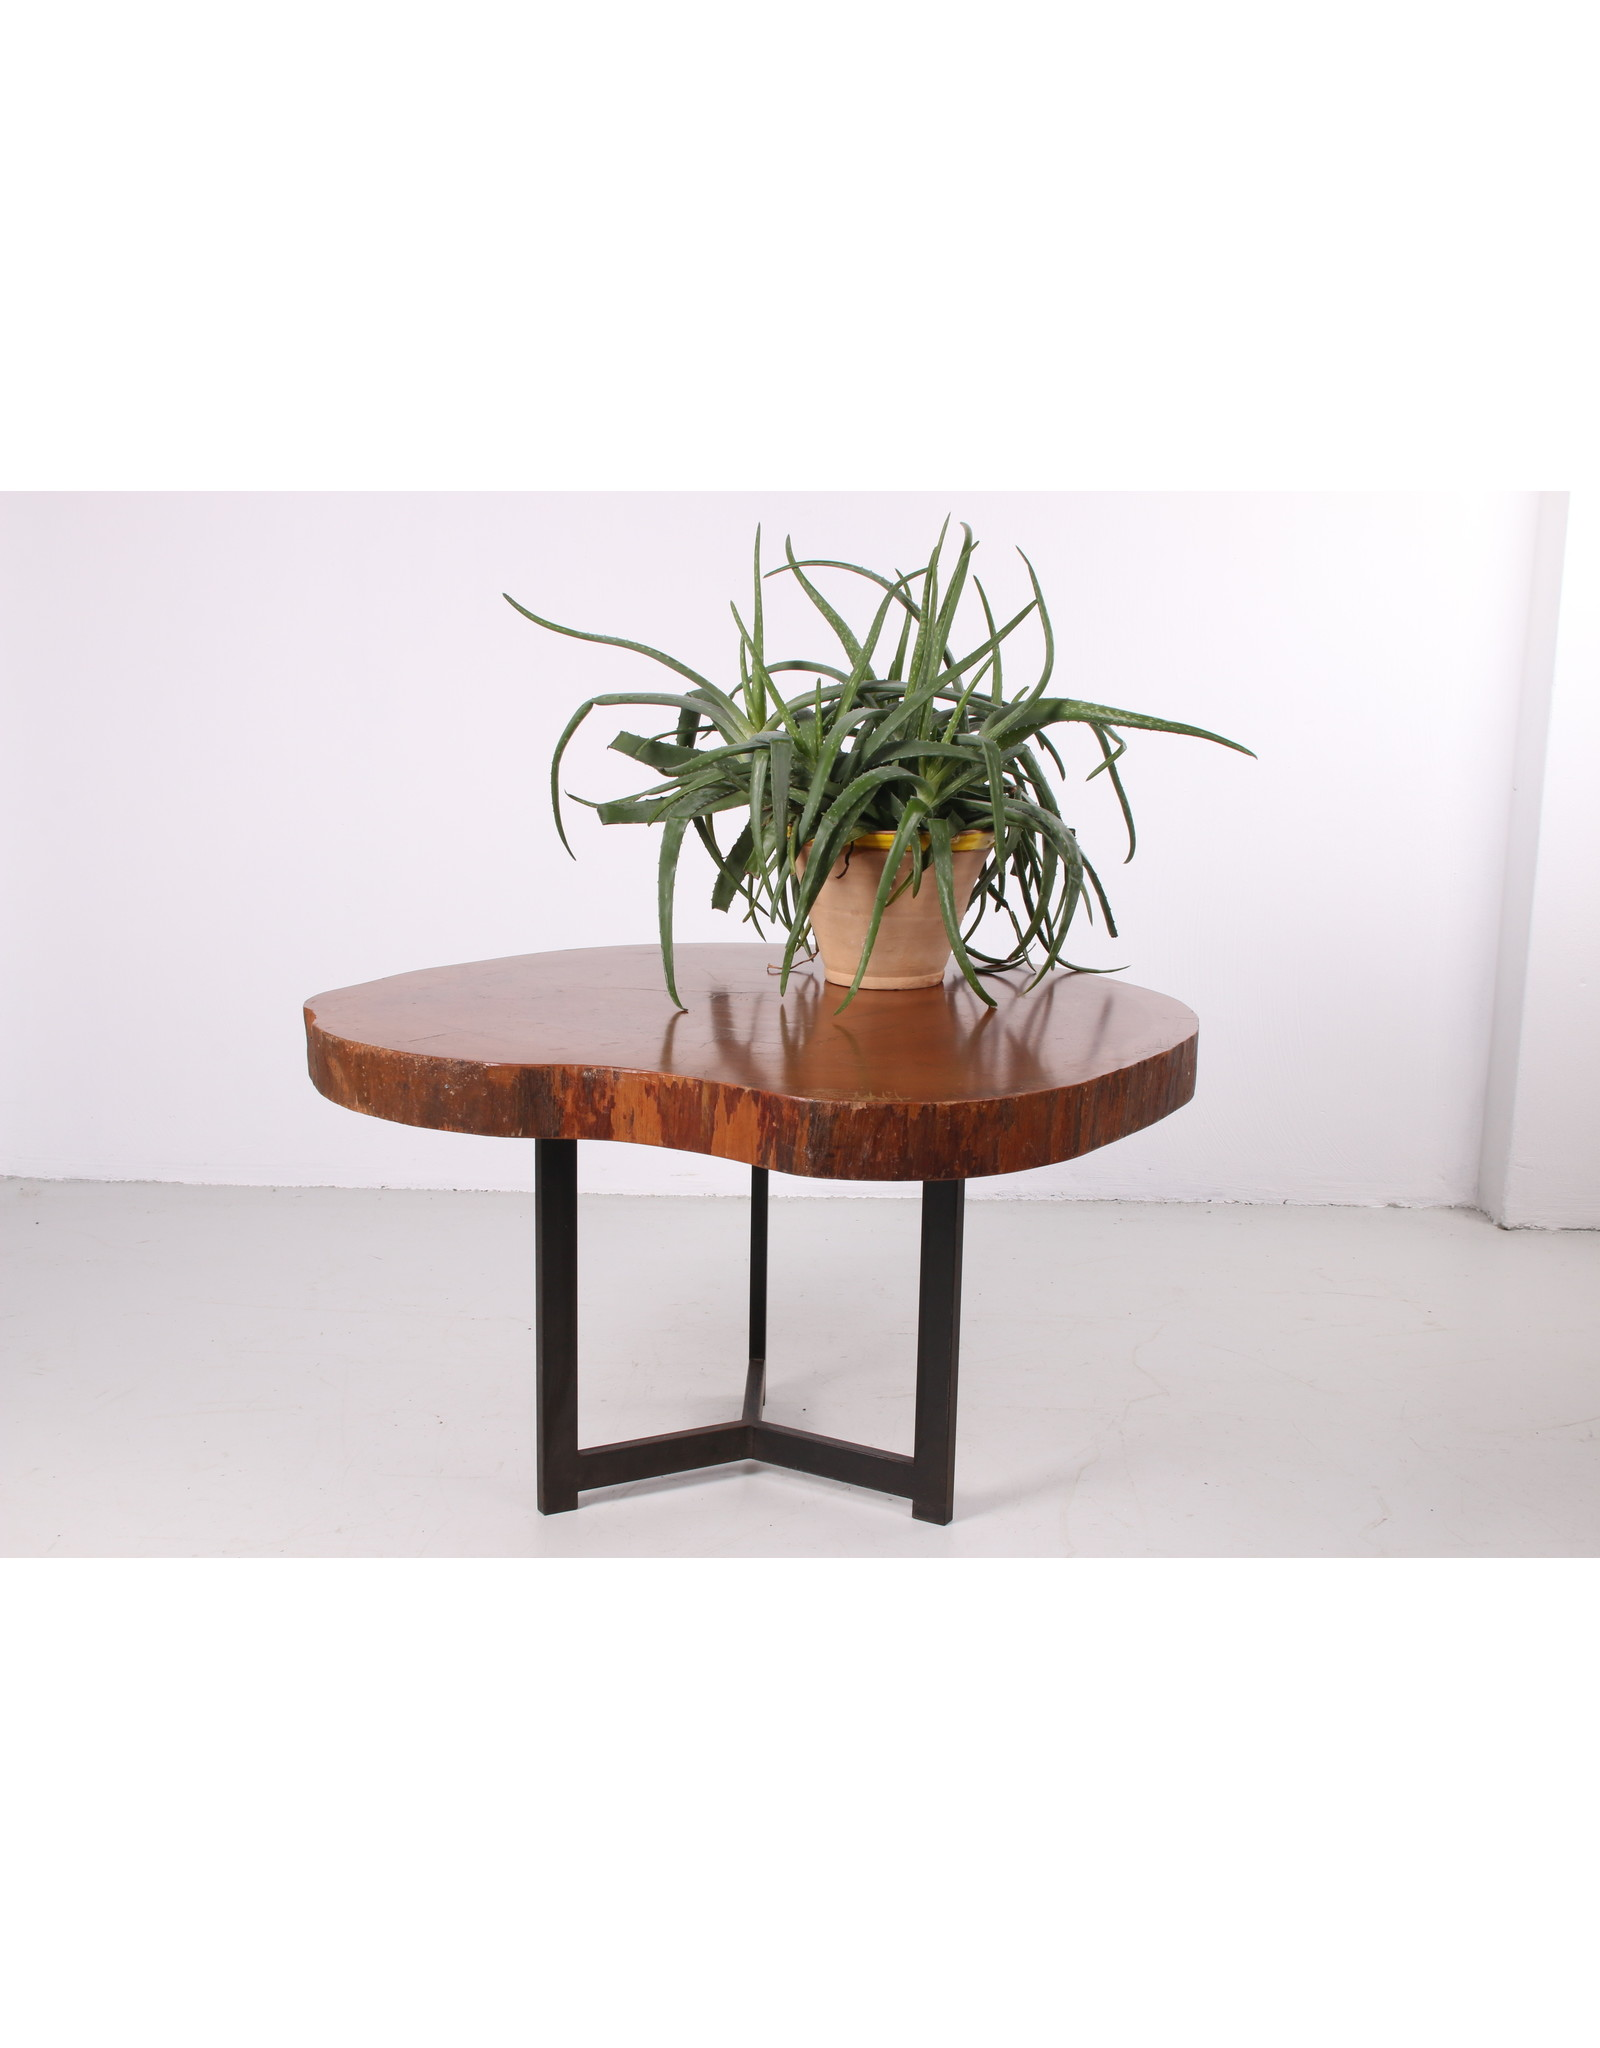 Vintage Tree Trunk Coffee Table With Metal Base 1960s Timeless Art Nl